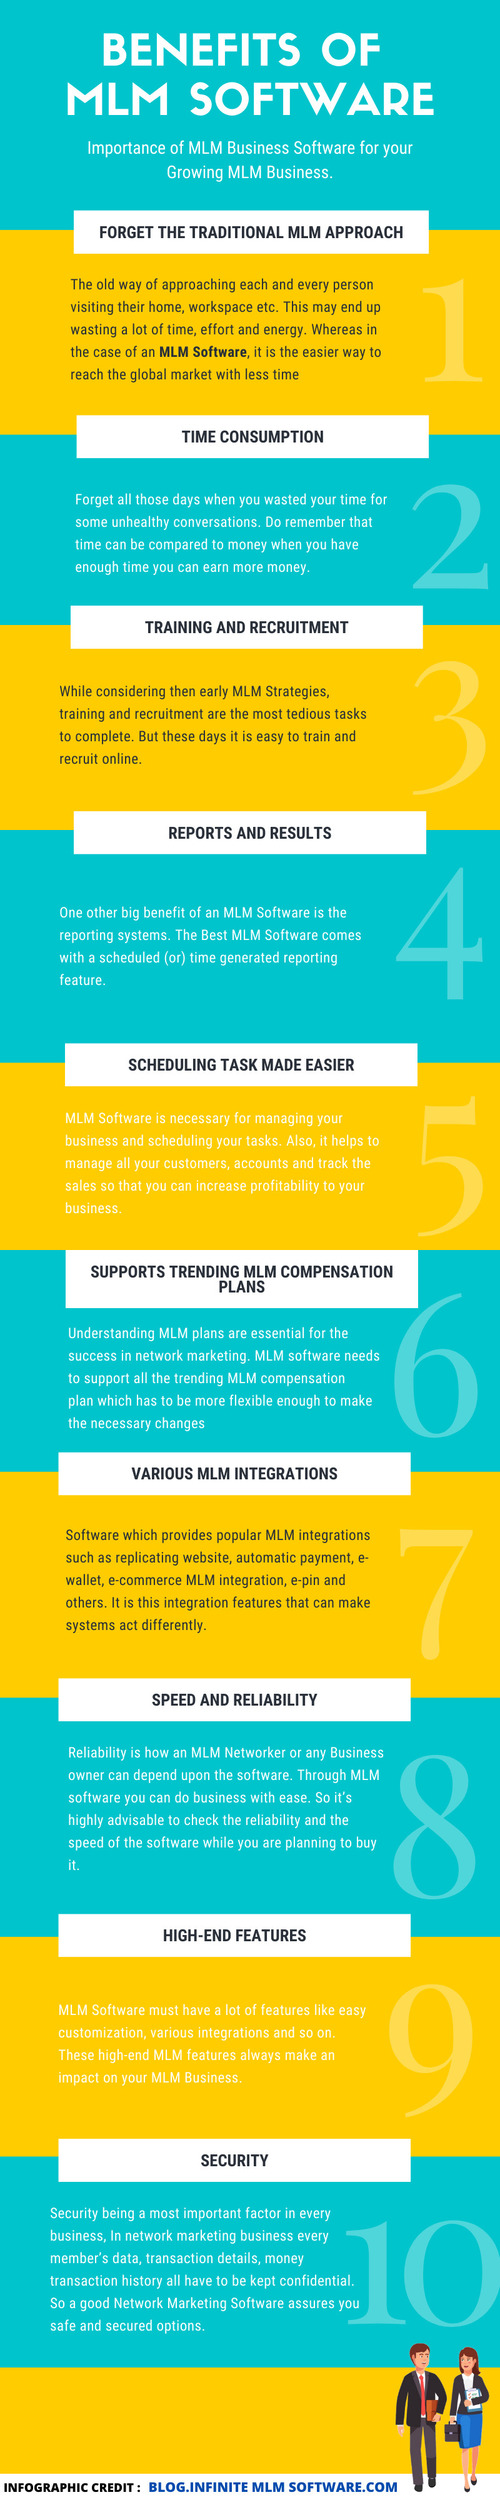 Benefits of MLM Software via Infinite MLM Software